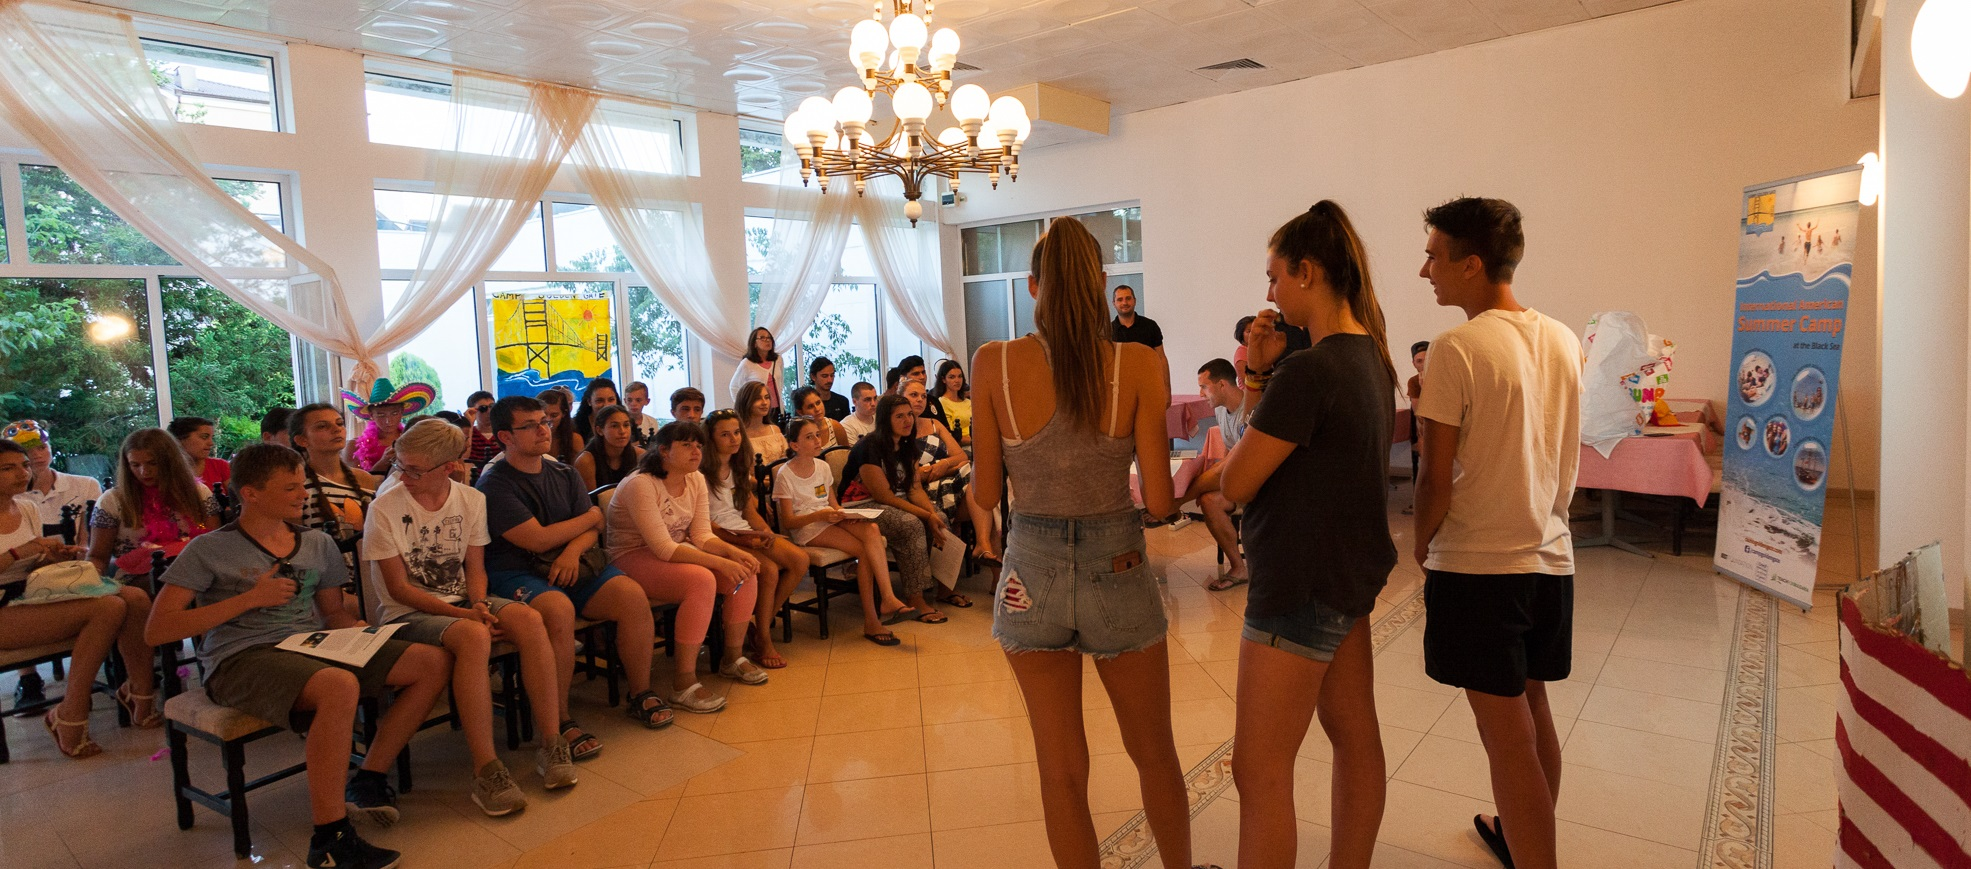 Camp Golden Gate develops students' self-esteem and ability to present in public.